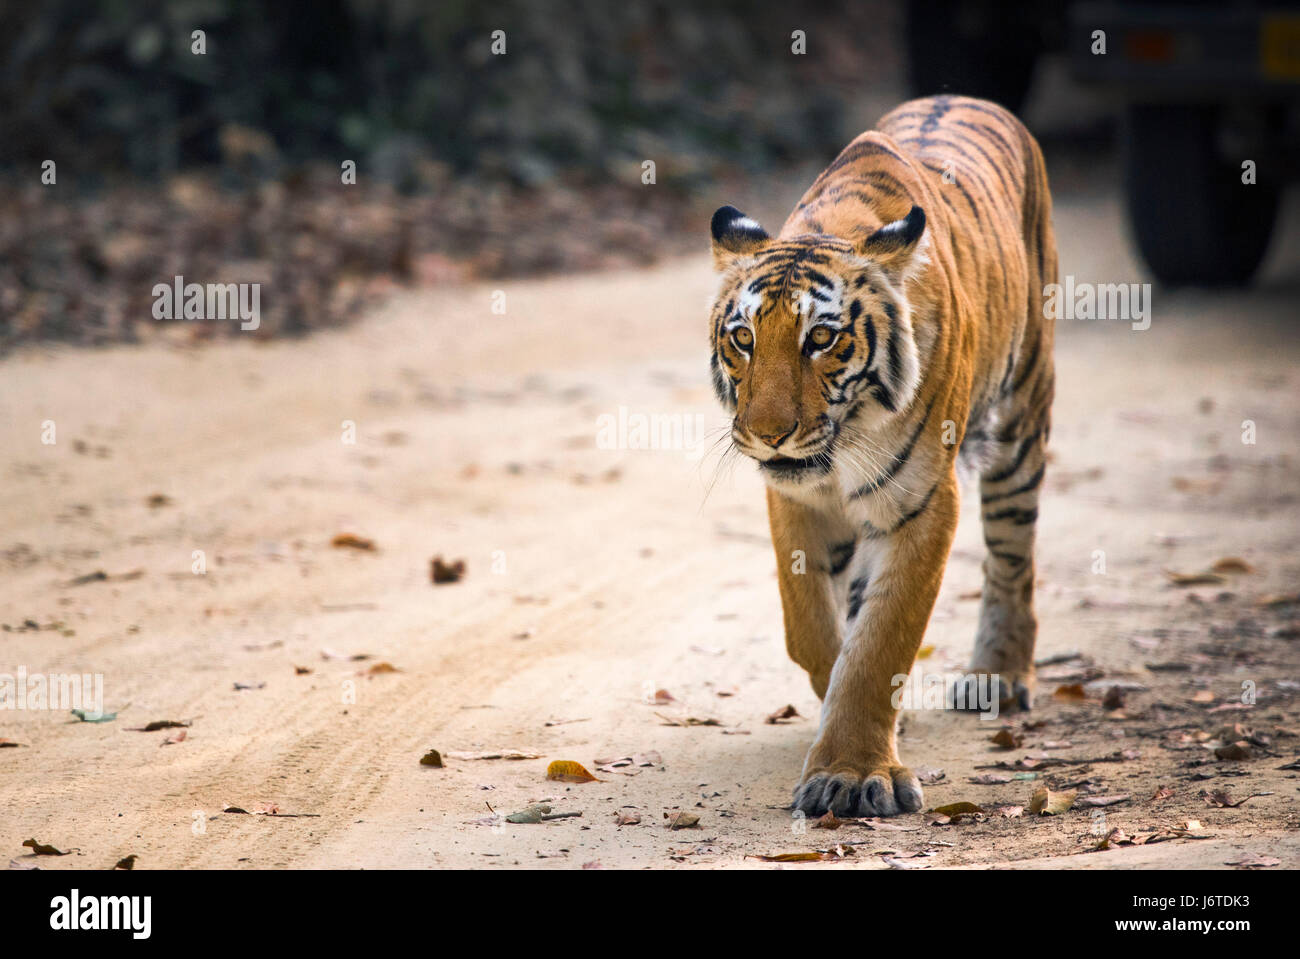 Tiger closeups - Stock Image